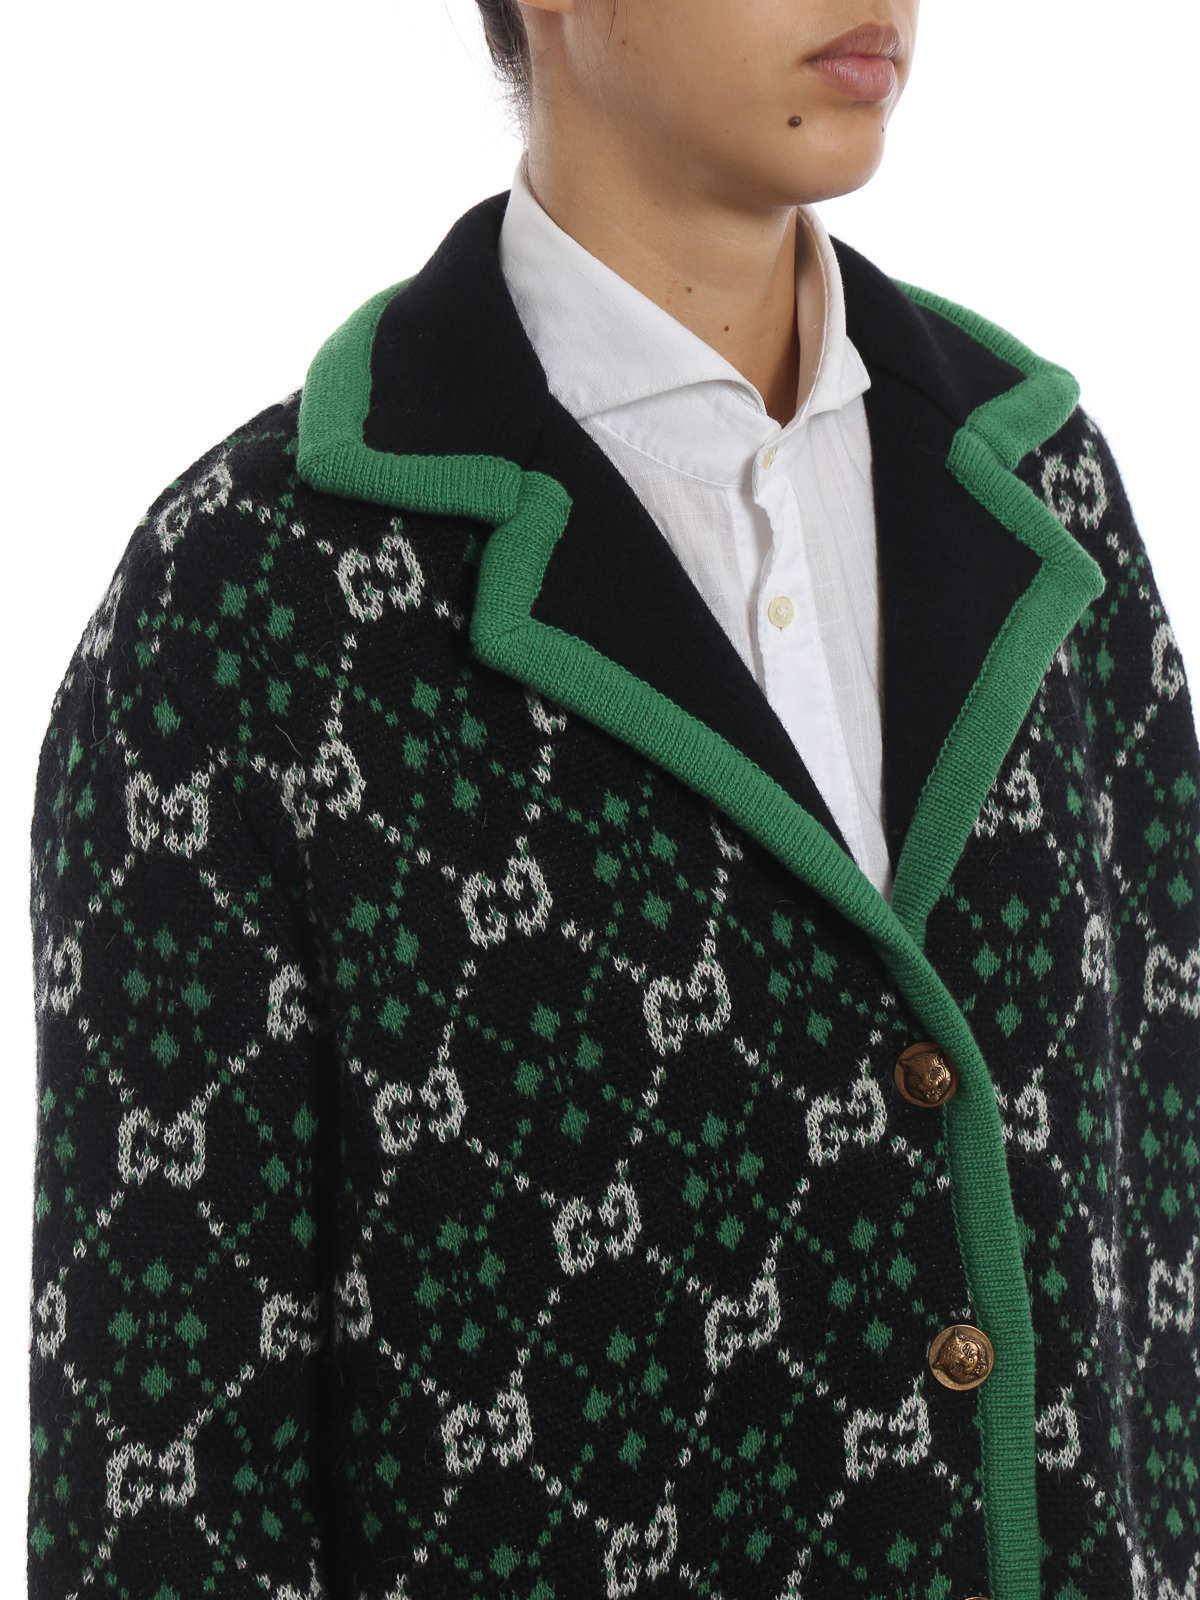 c0233568775 Gucci - GG pattern alpaca and wool over cardigan - cardigans ...